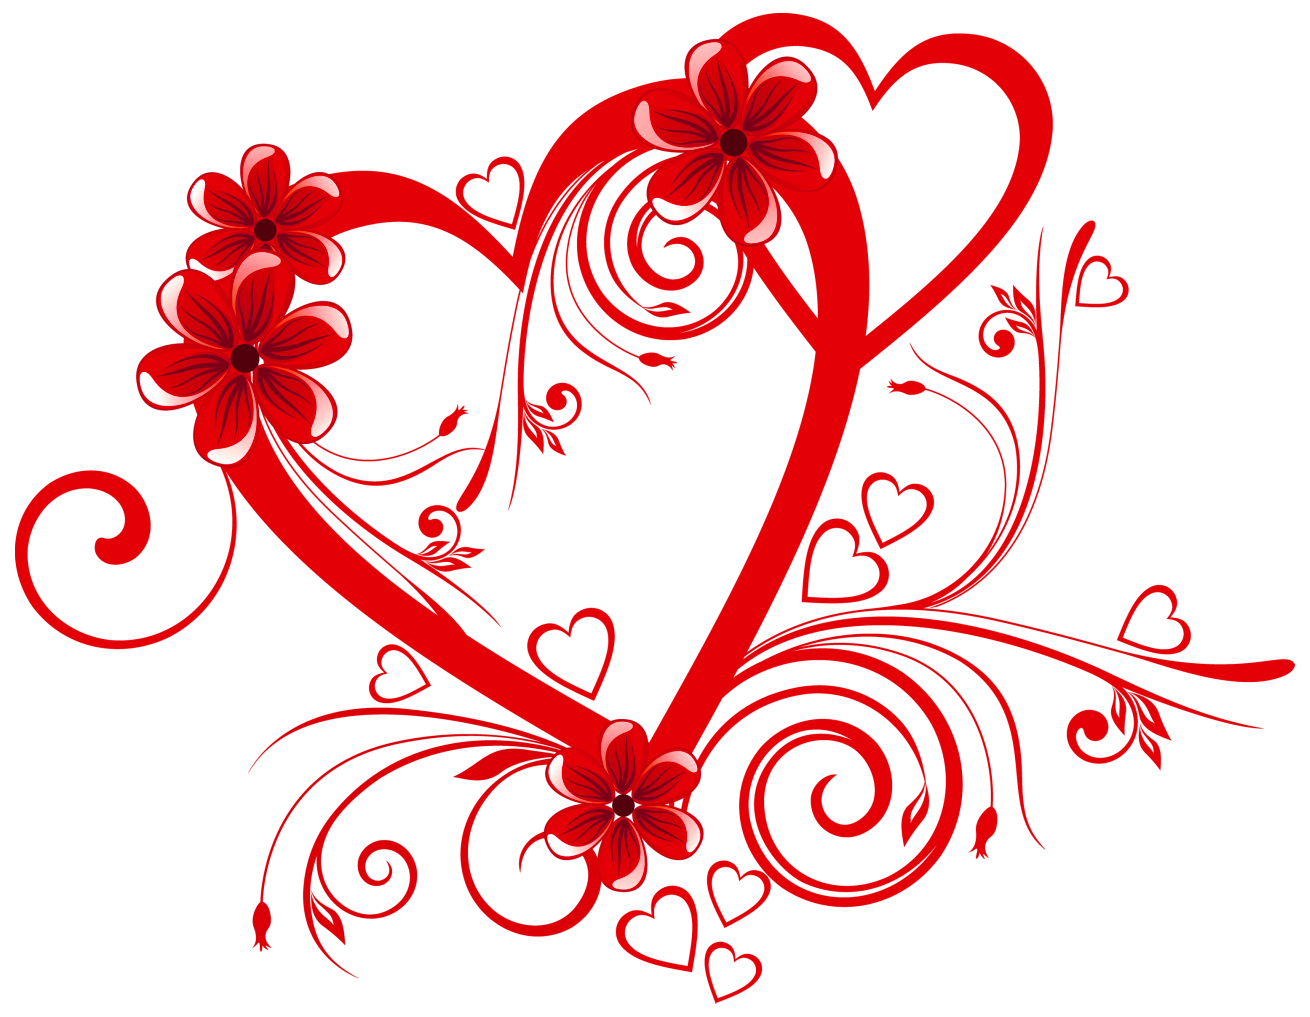 I Love U Images Free Download ClipArt Best Heart